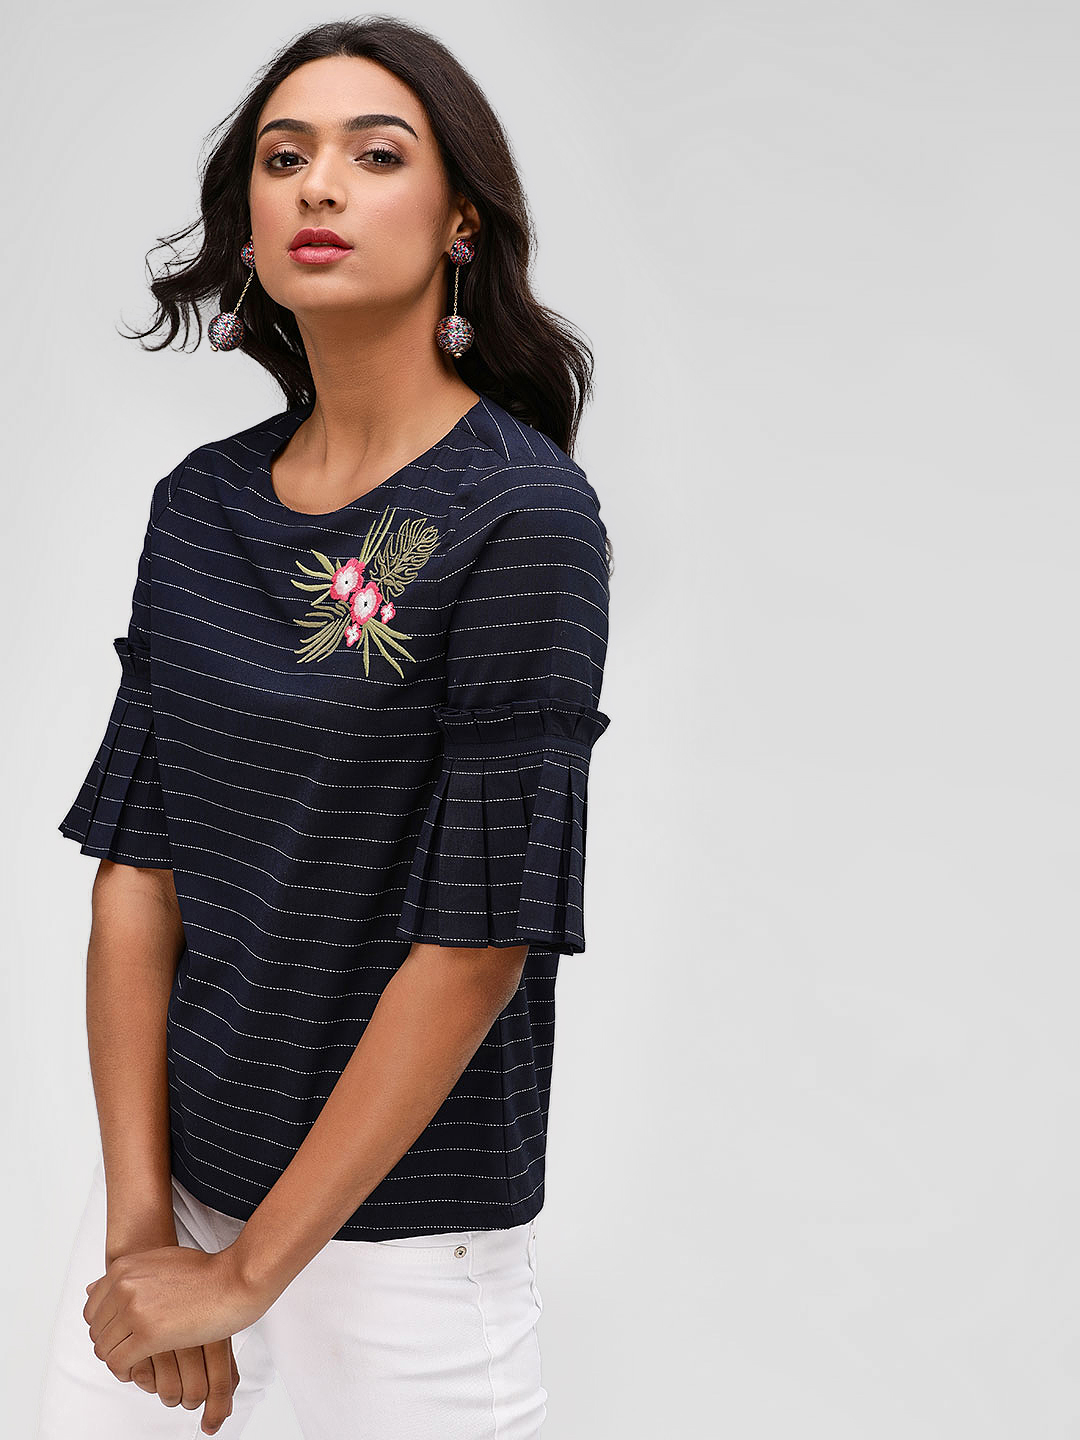 PostFold Navy Striped Top With Floral Embroidery 1